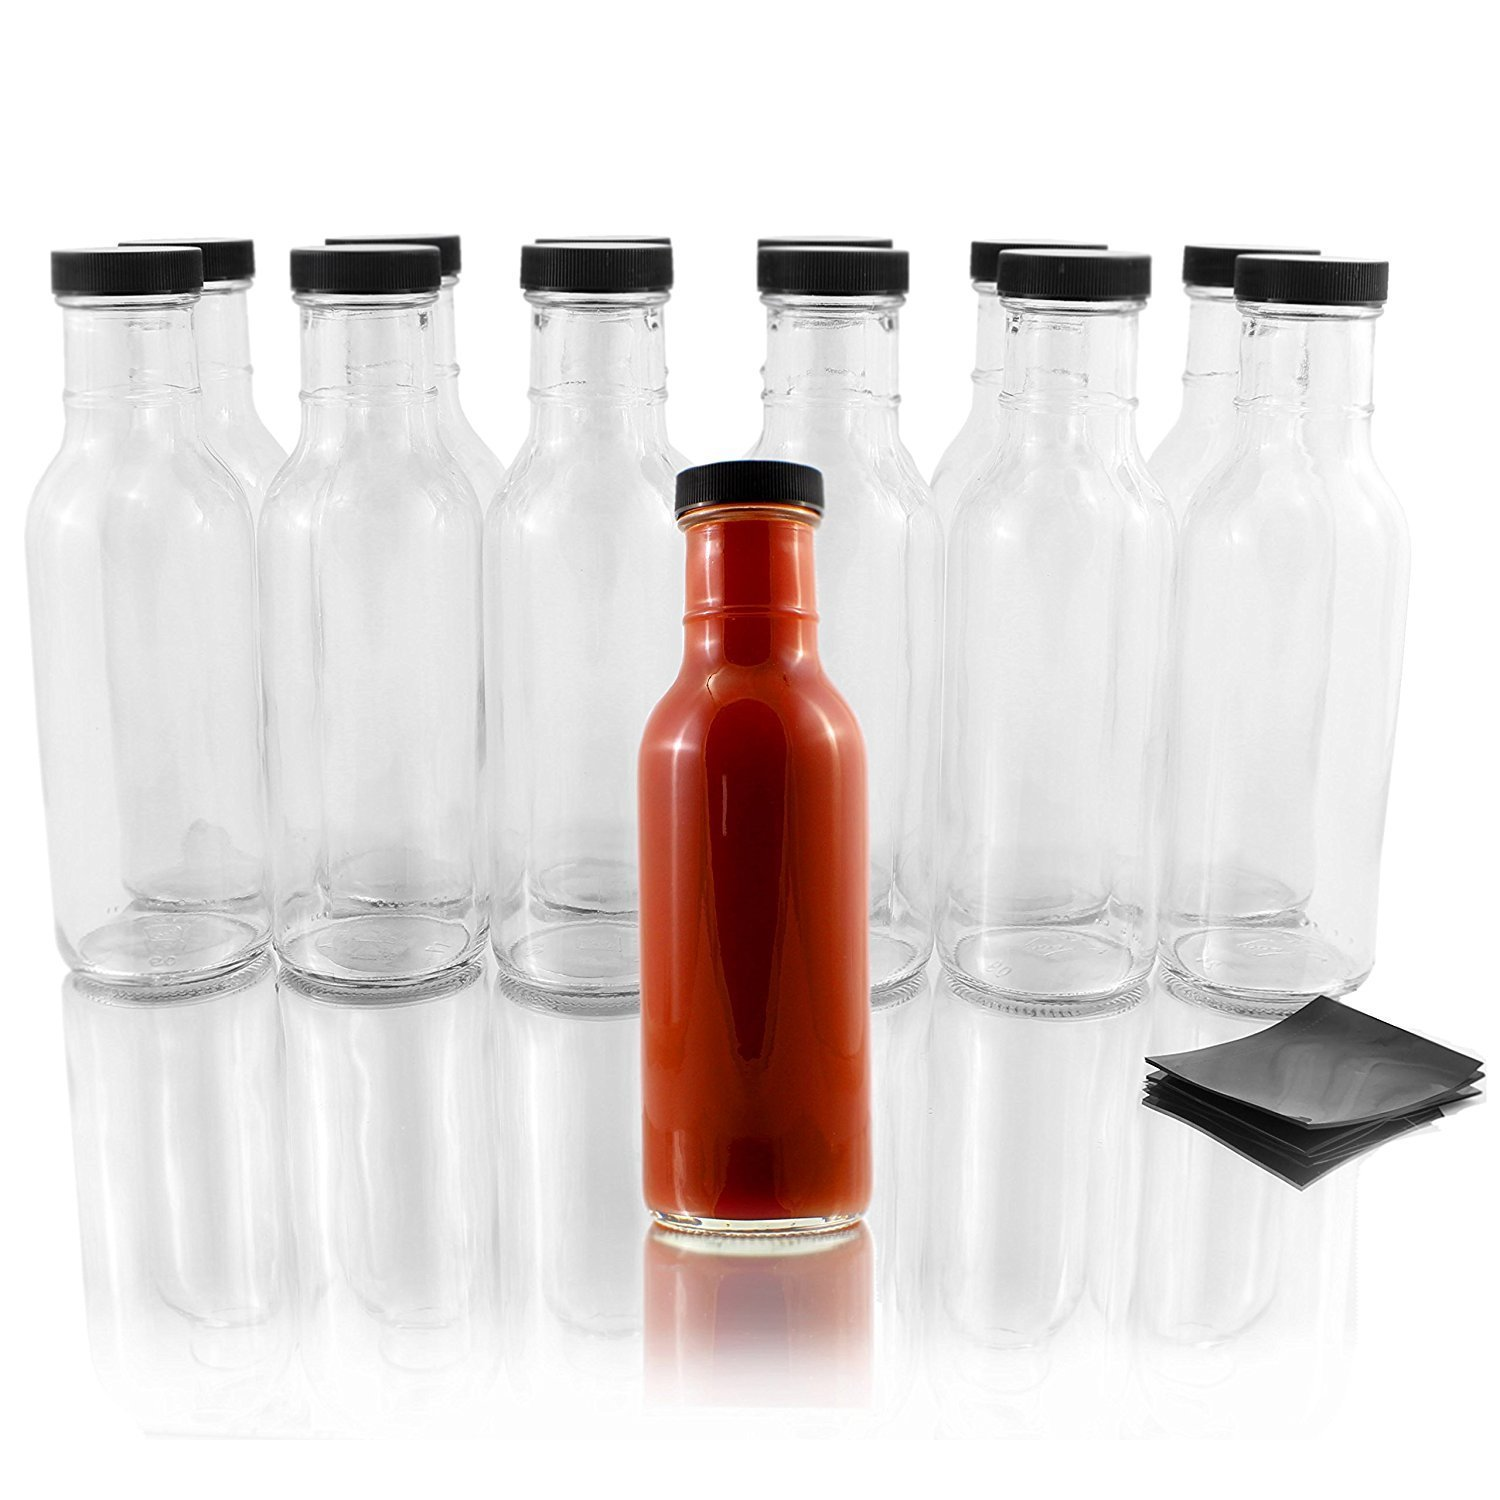 B015NFUIYO - Wide Mouth Hot Sauce Bottles 1